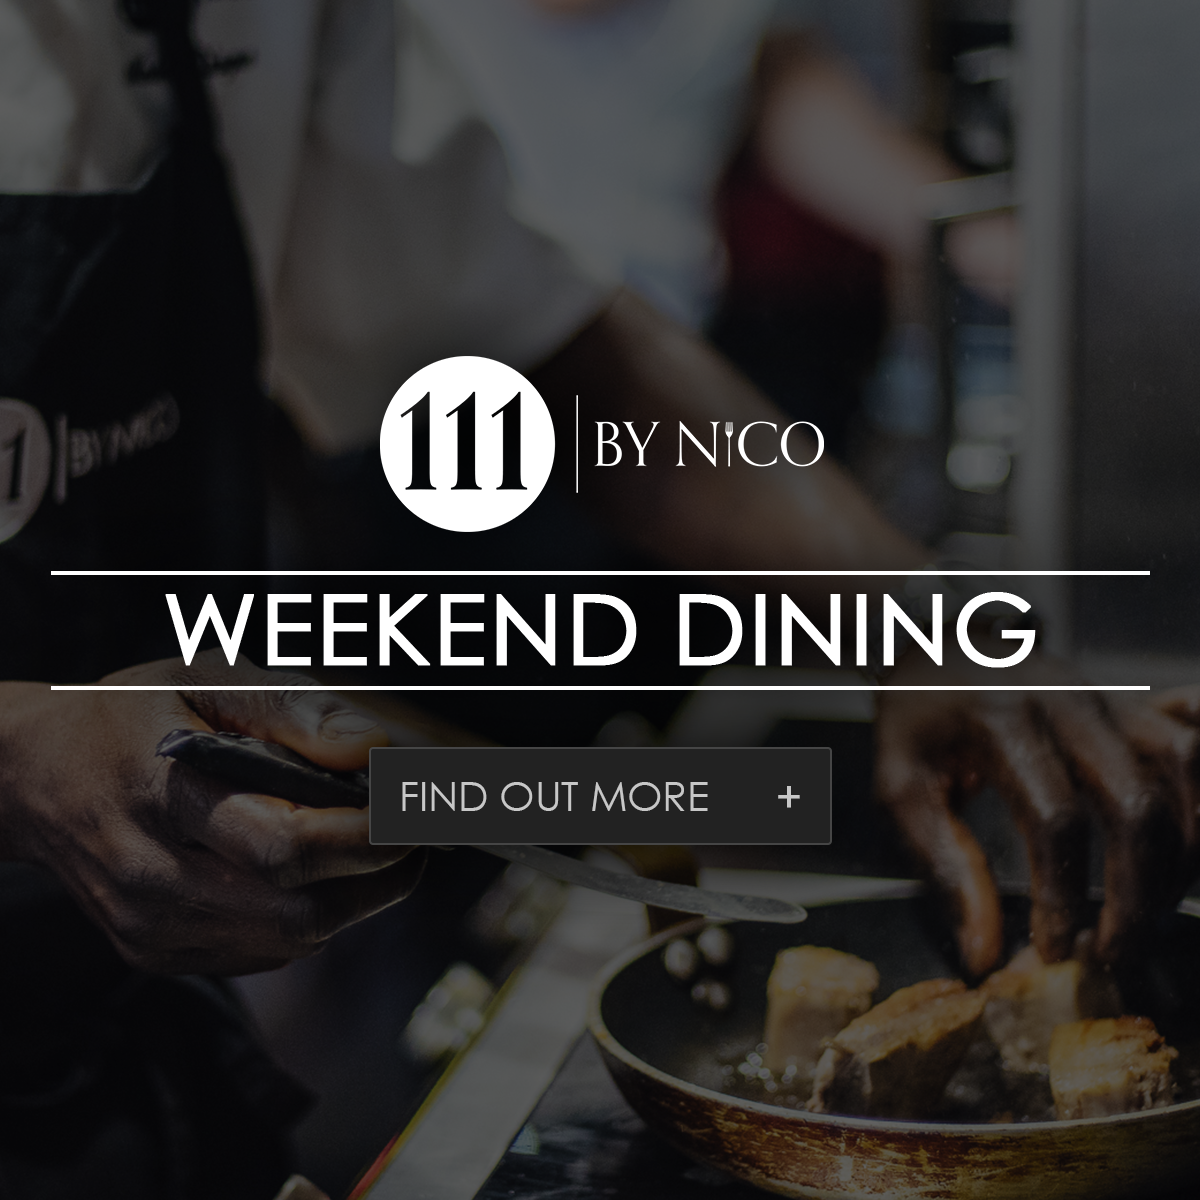 weekend dining at 111 by nicos